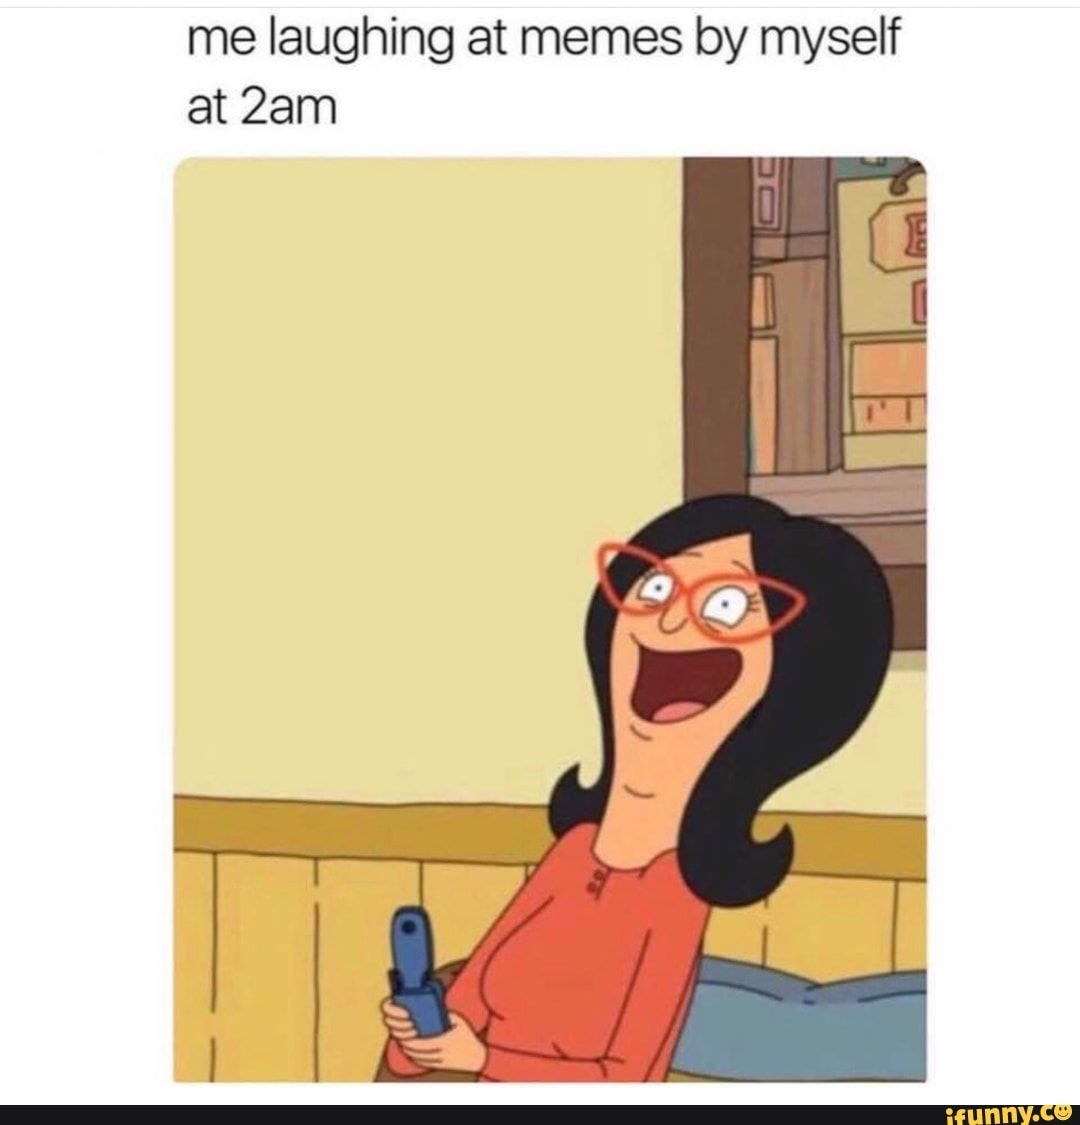 Me Laughing At Memes By Myself At 2am Ifunny Bobs Burgers Funny Funny Relatable Memes Bobs Burgers Memes